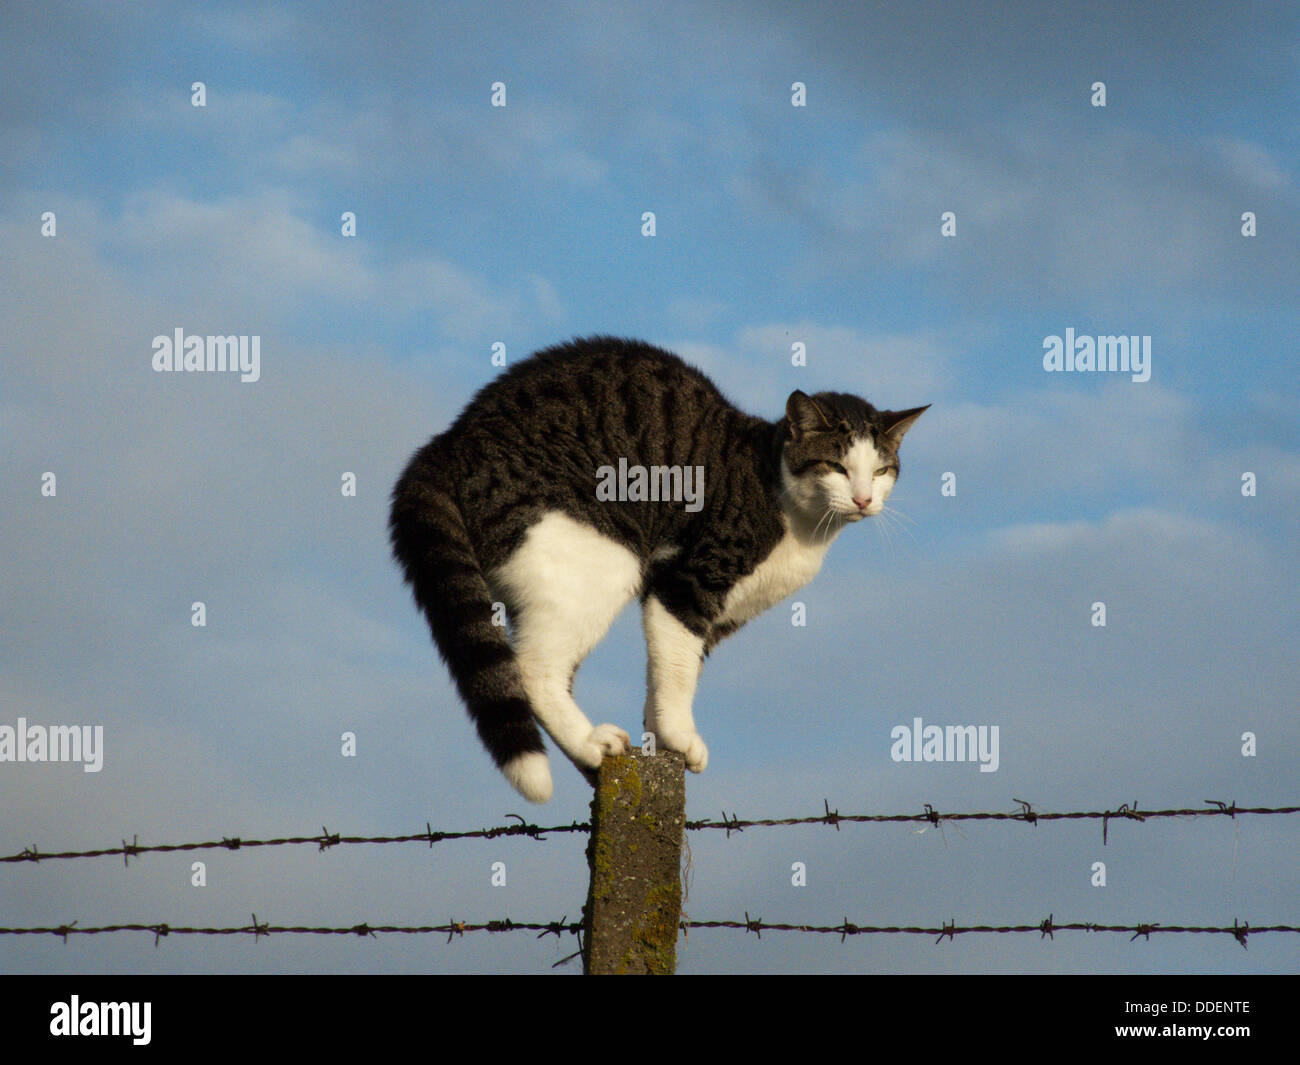 Cat photographed on barbed wire fence post Stock Photo: 59946110 - Alamy